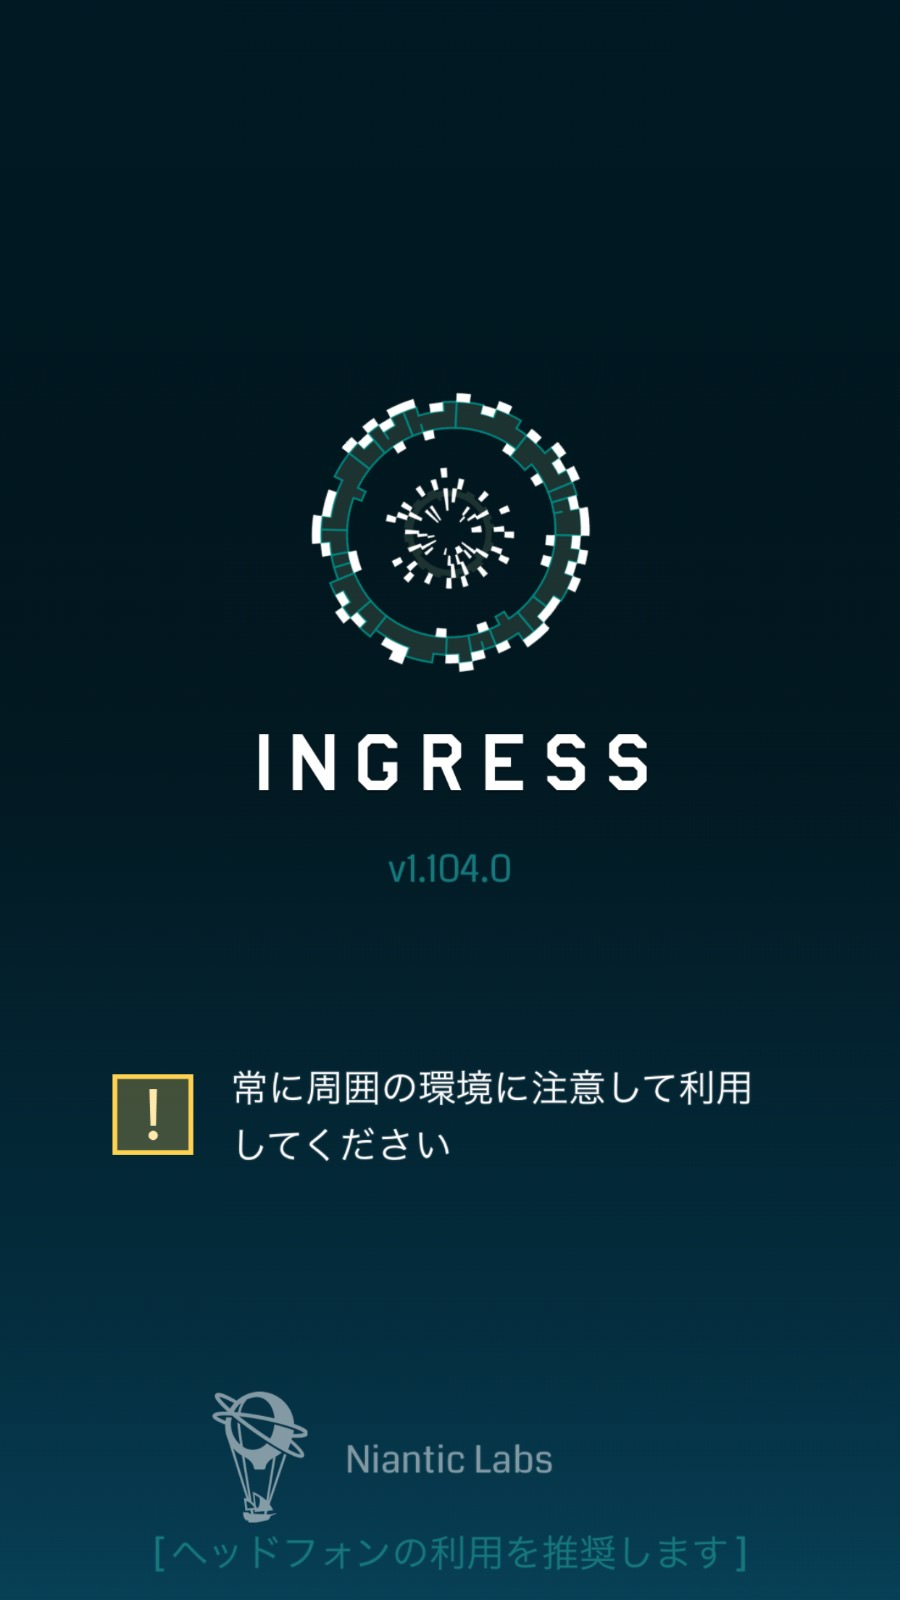 【Ingress】iOS版「Ingress 1.104.0」リリース